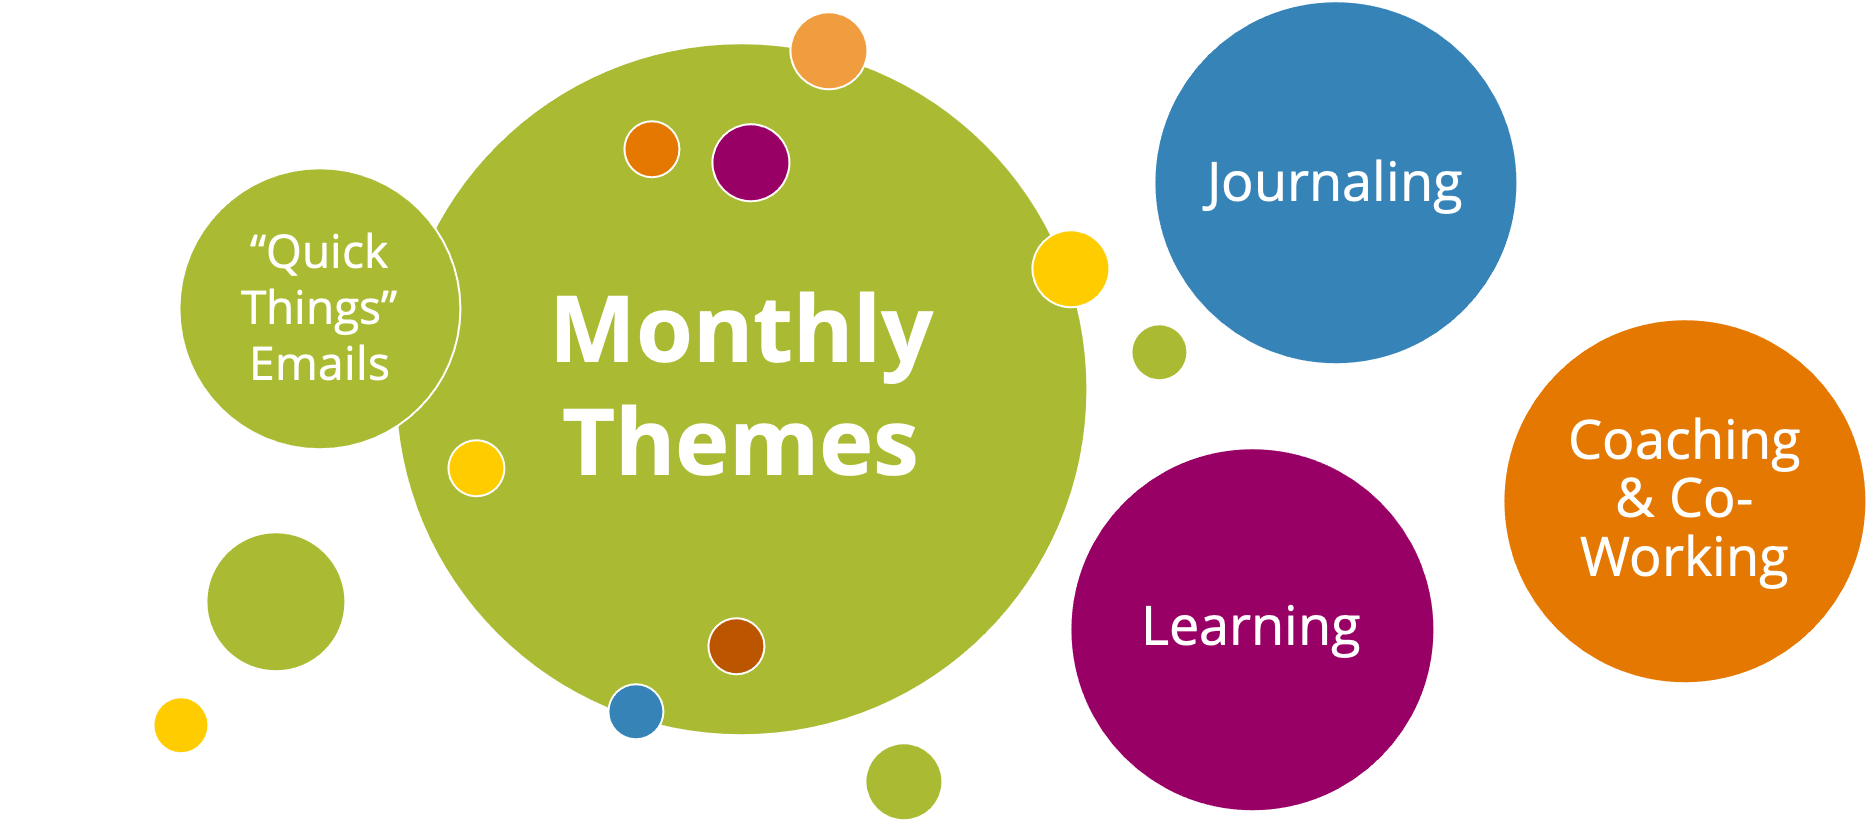 Joybook content summary: monthly themes, journaling, learning, coaching & co-working